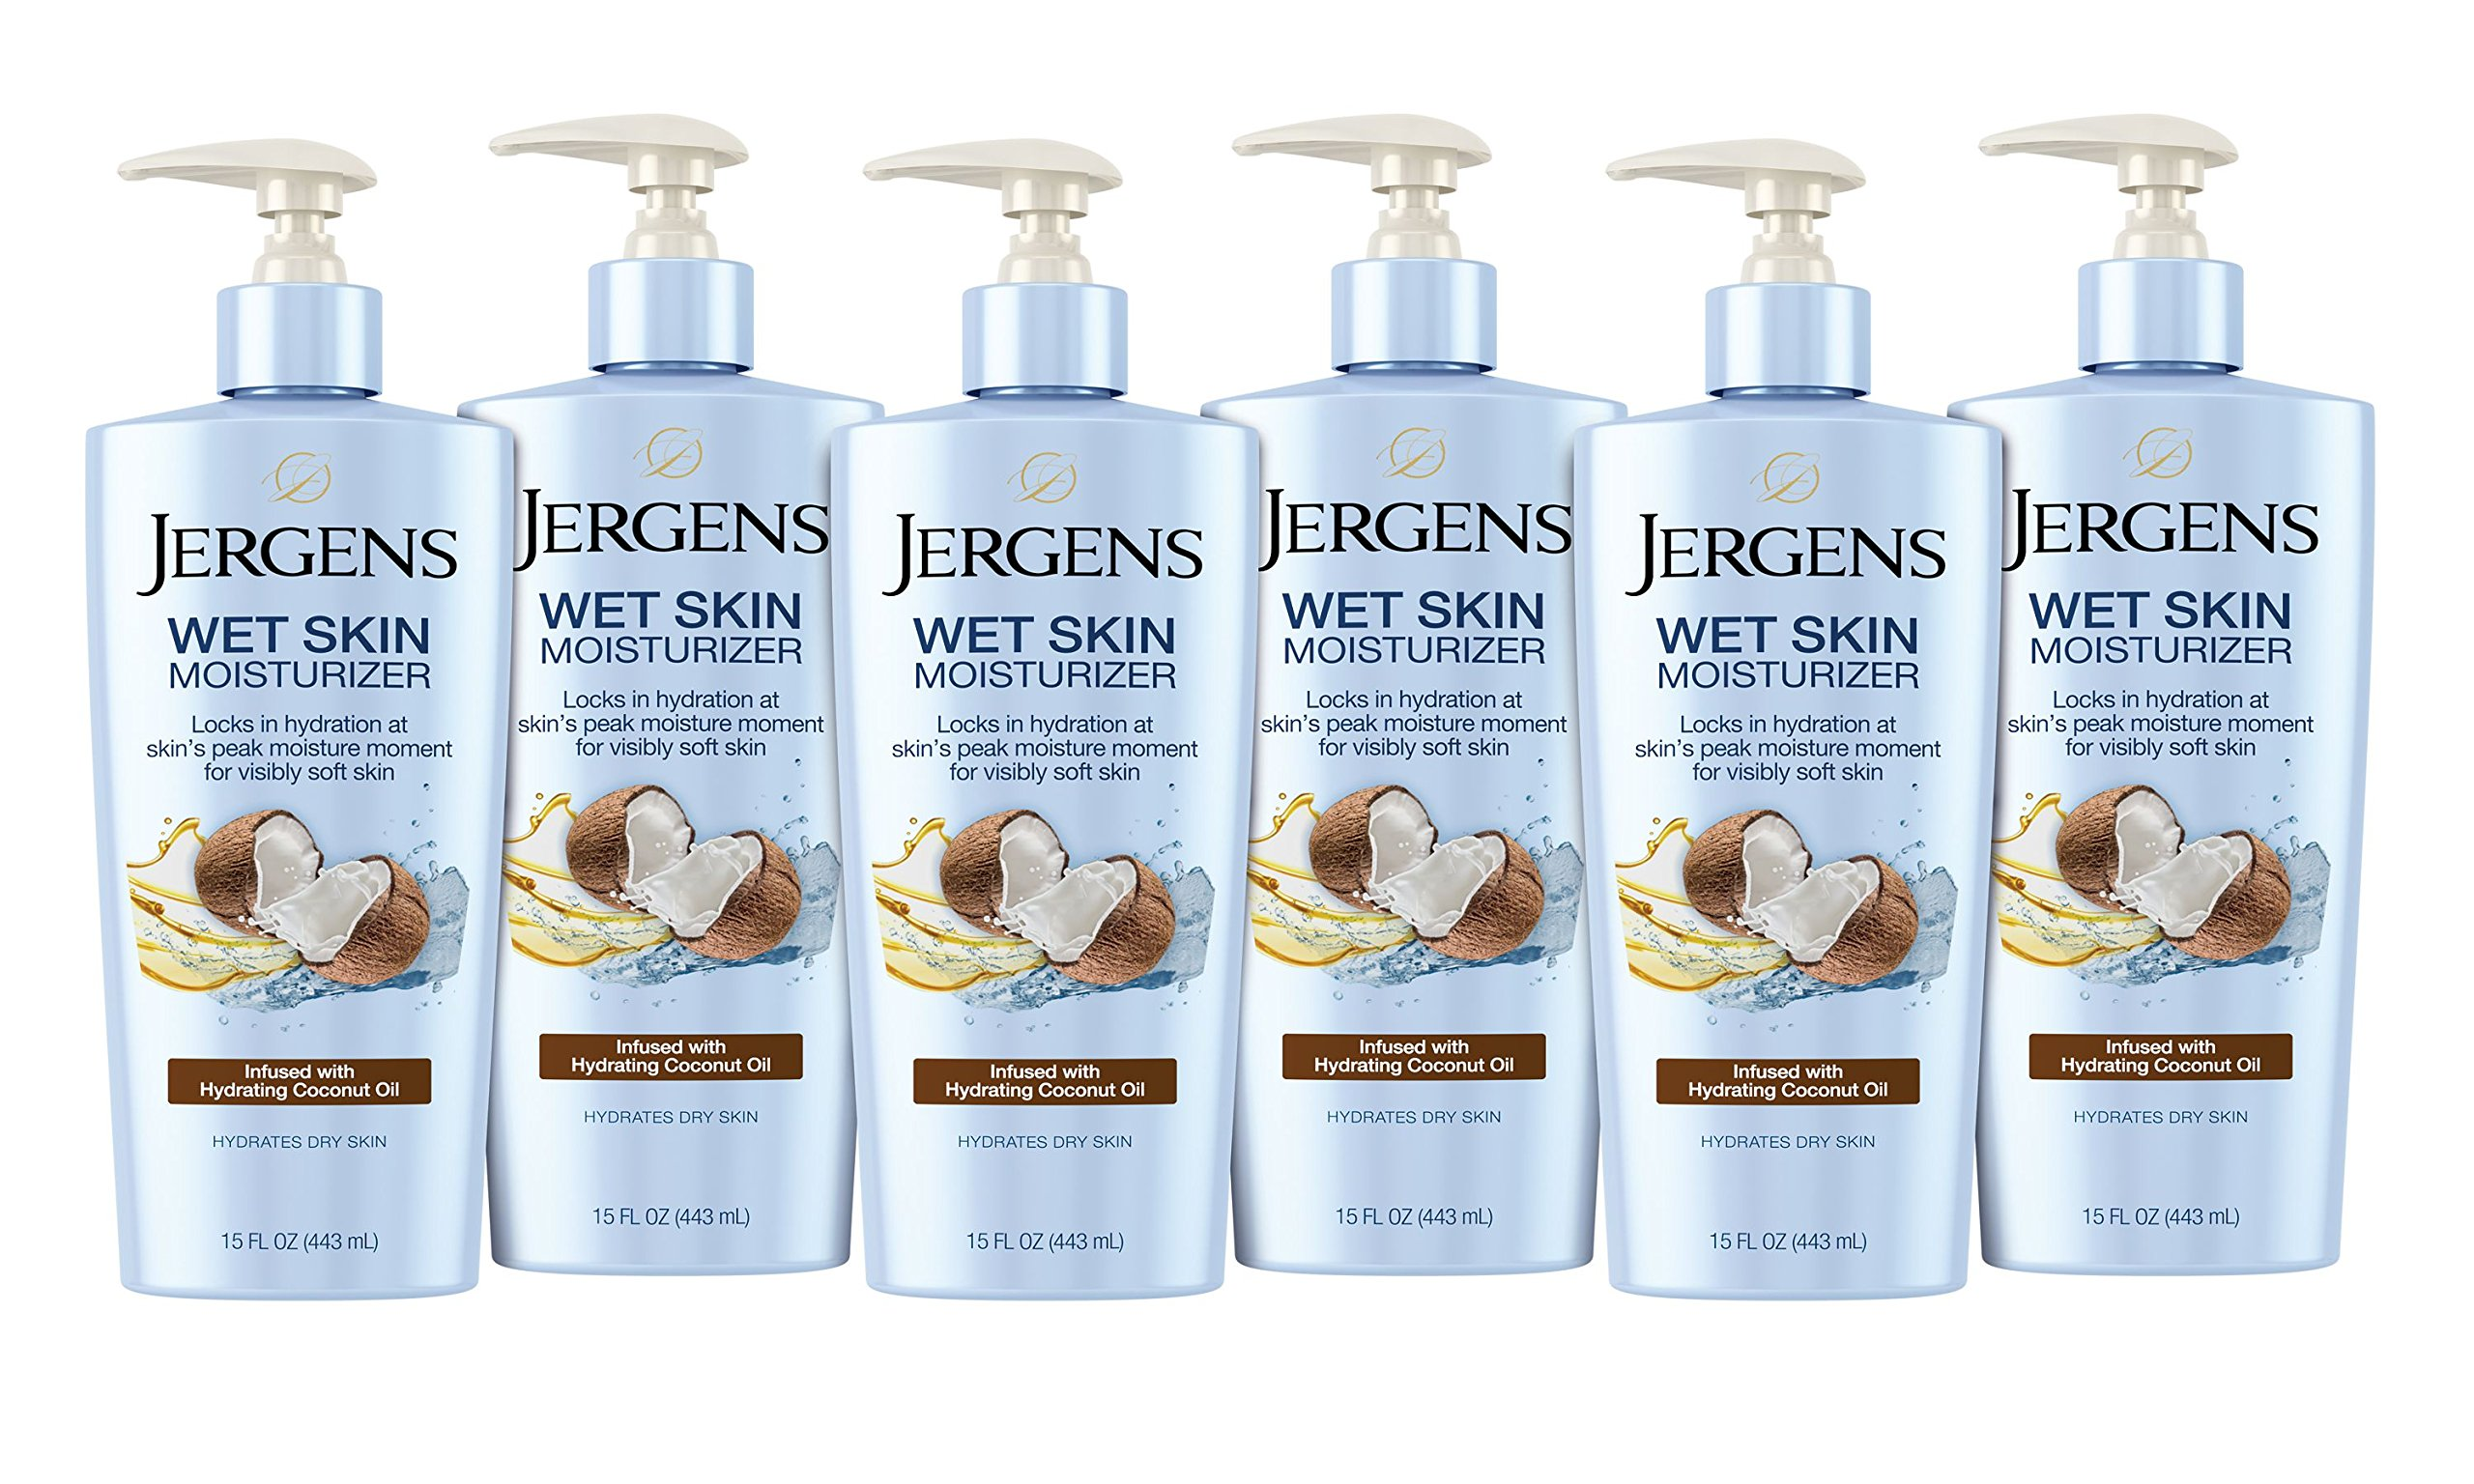 Jergens Wet Skin Body Moisturizer with Refreshing Coconut Oil, 15 Ounces (Pack of 6) (Packaging May Vary)